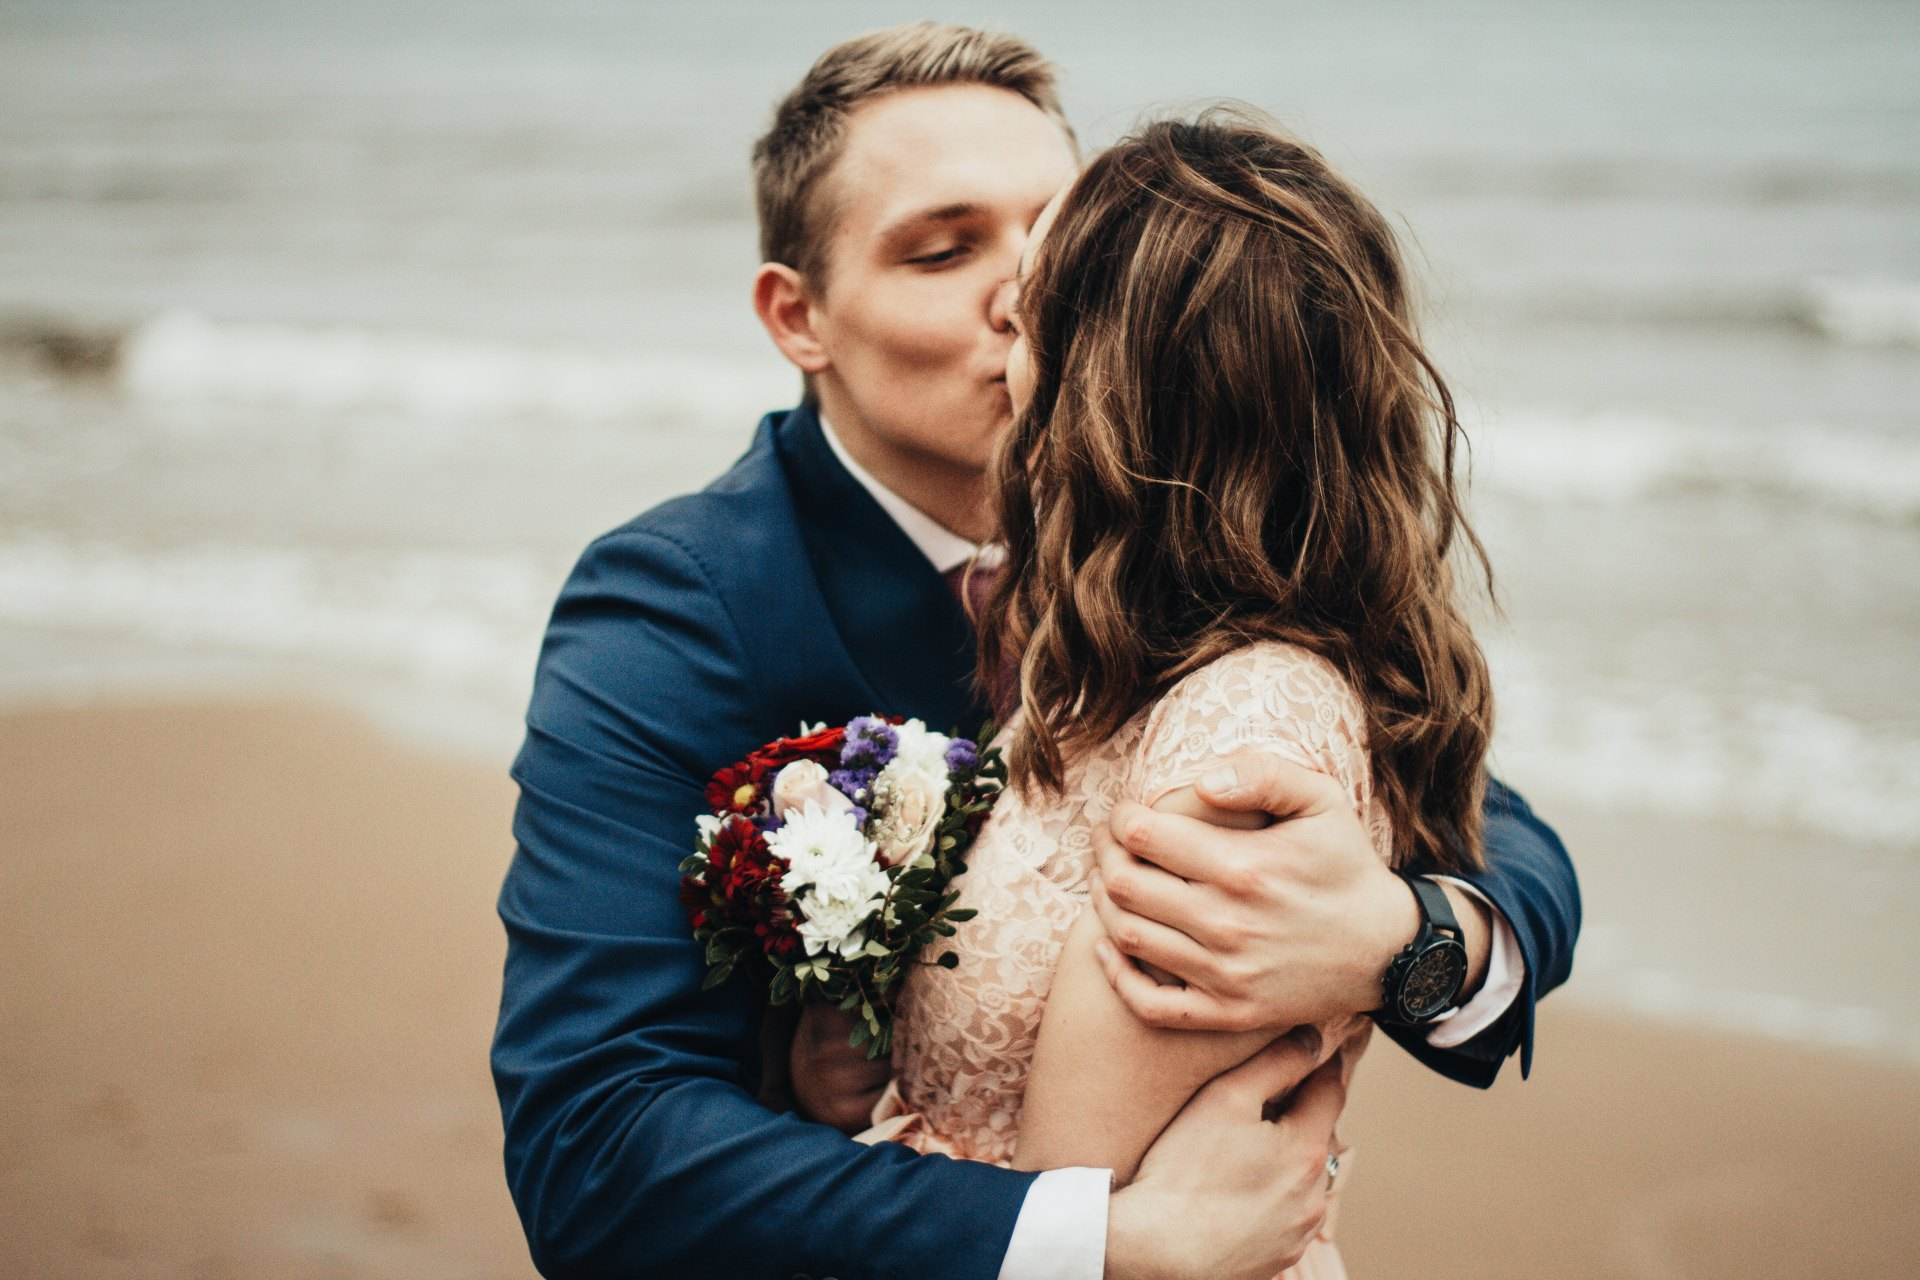 50 Weddings Guests Reveal The Red Flag During The Ceremony That Hinted The Relationship Wouldn't Last